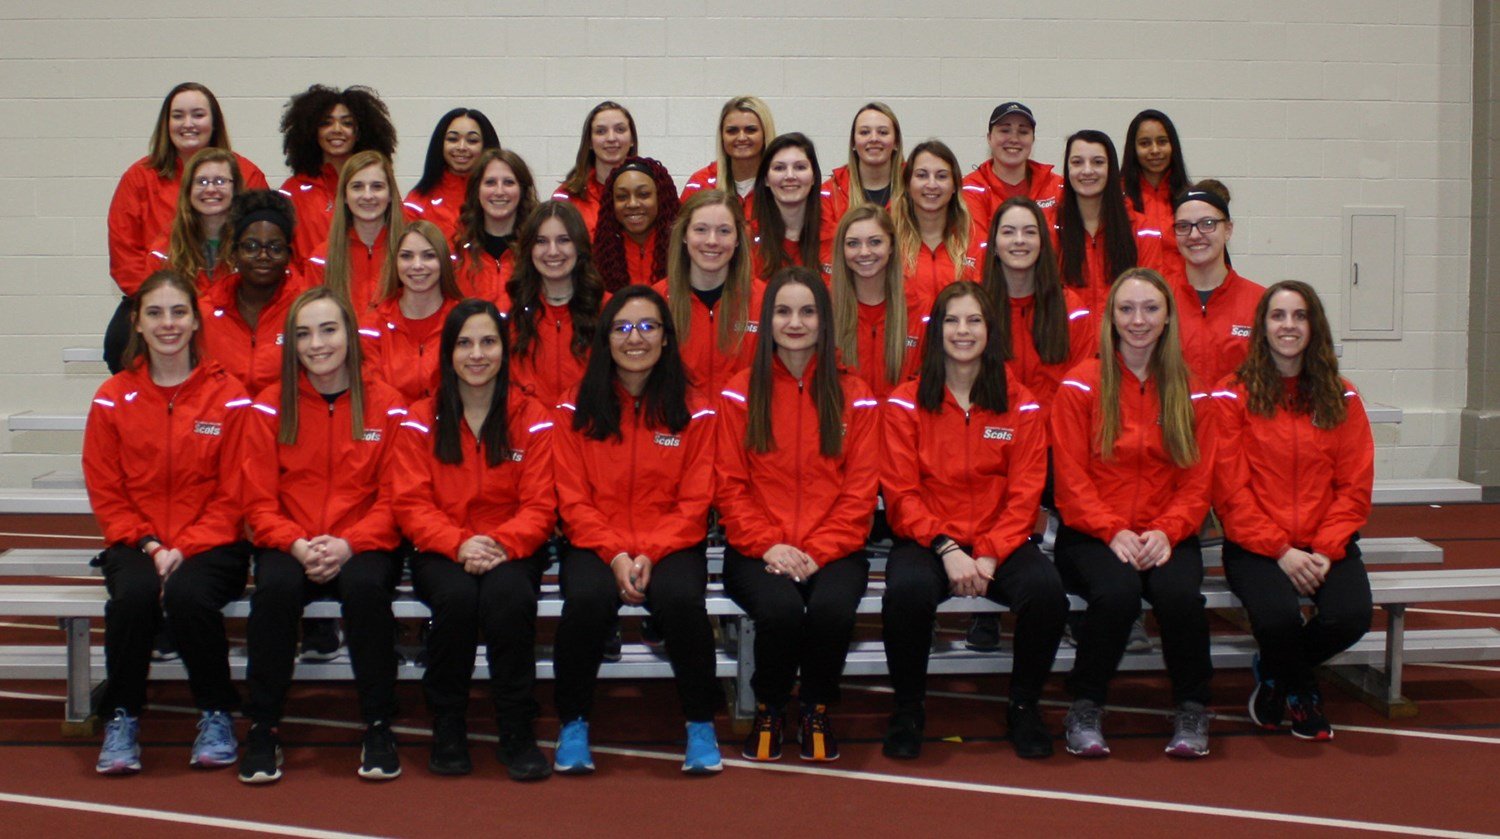 2019 Women's Track & Field Roster - Monmouth College Athletics